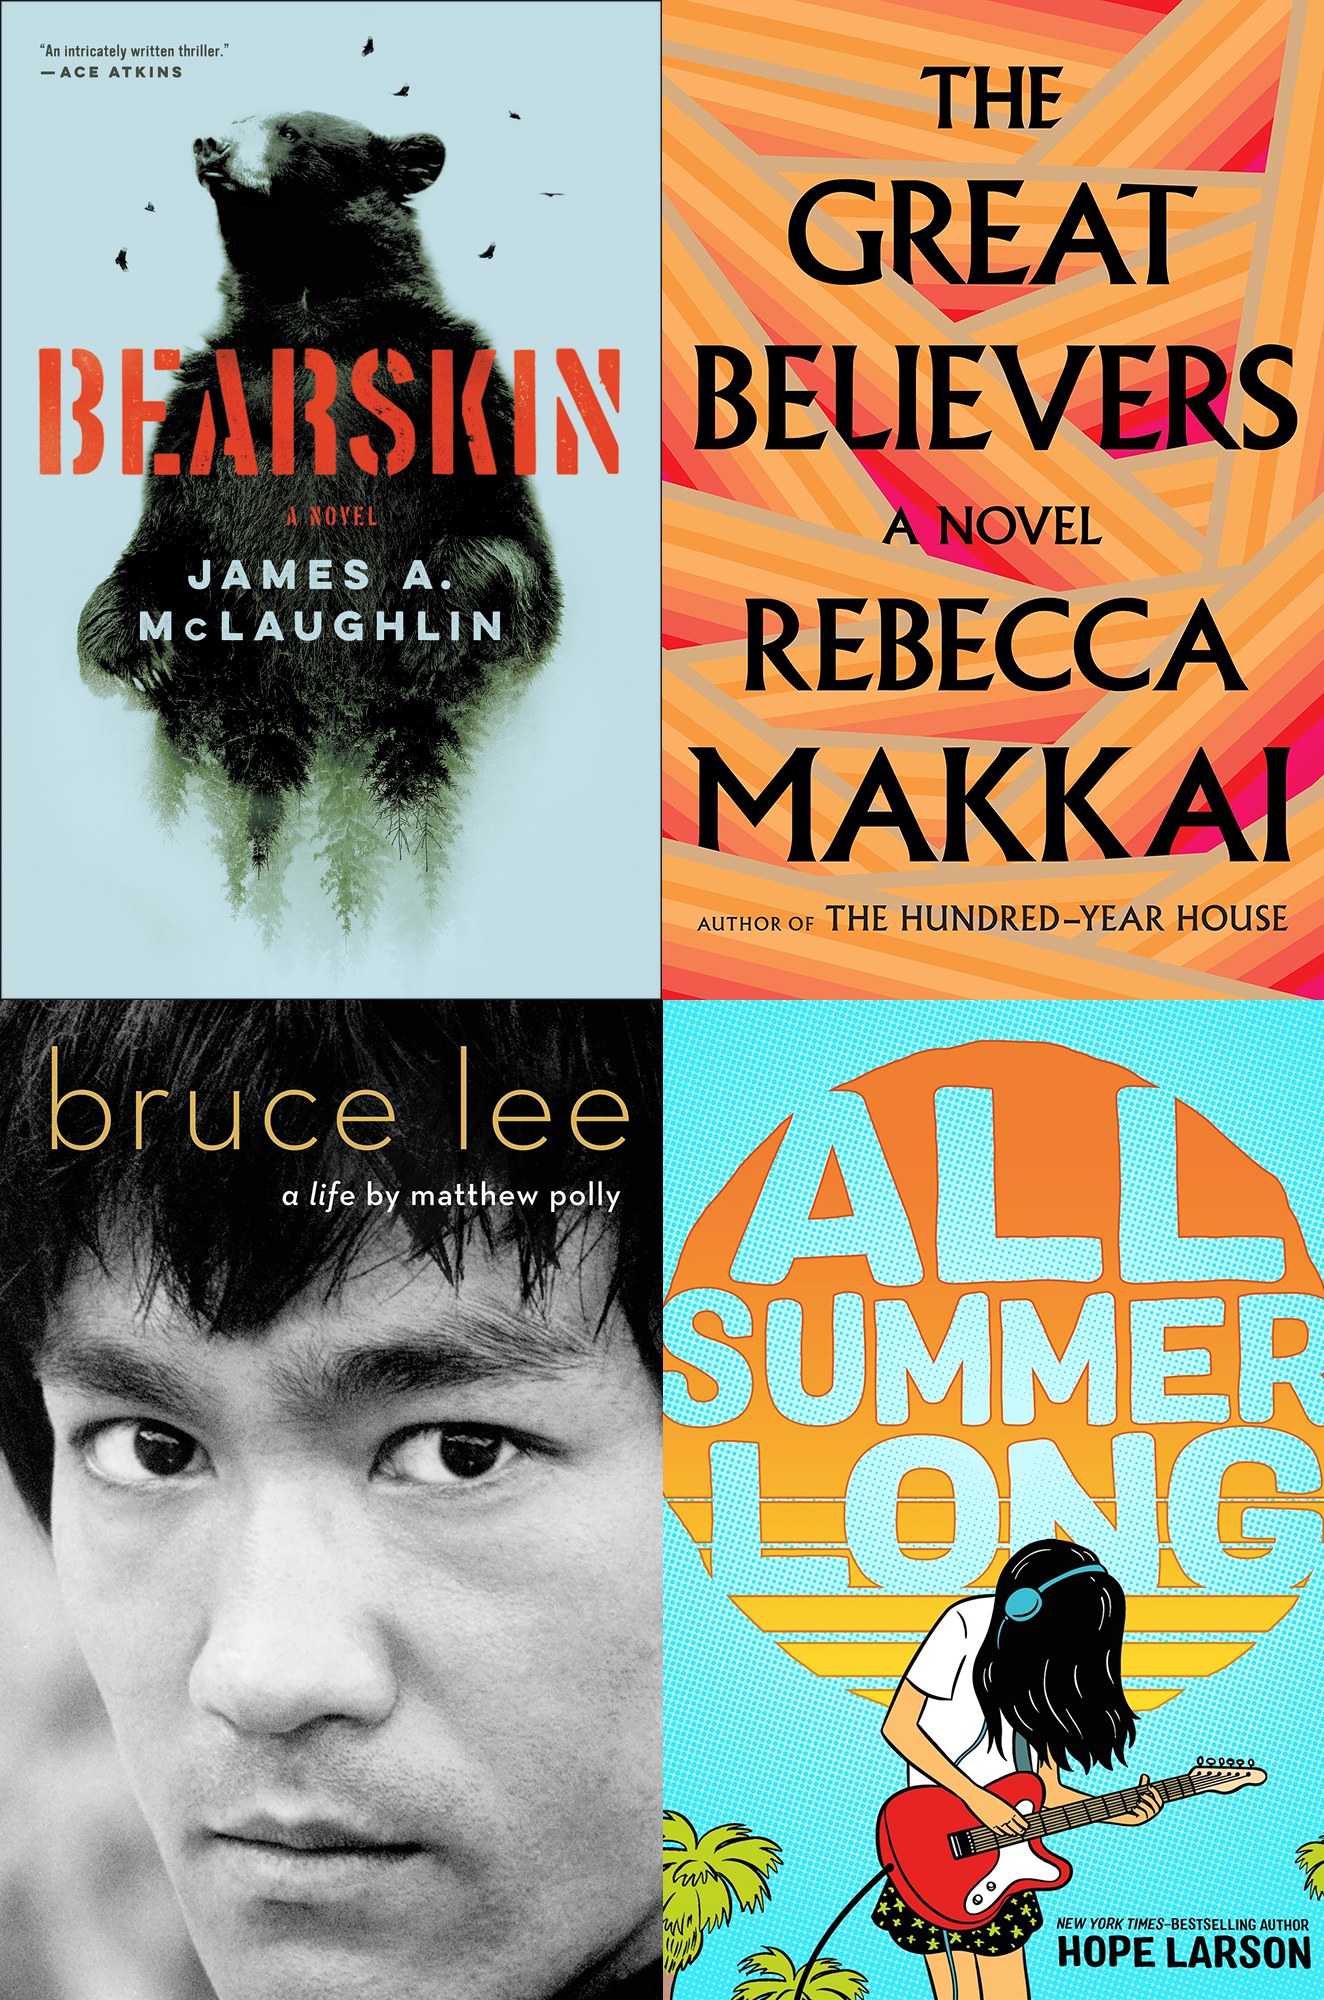 Best books summer 2018 from publishers weekly publishers weekly wondering what to read this summer dont worry pws editors have you covered in our staff picks youll find a killer appalachian thriller fandeluxe Choice Image